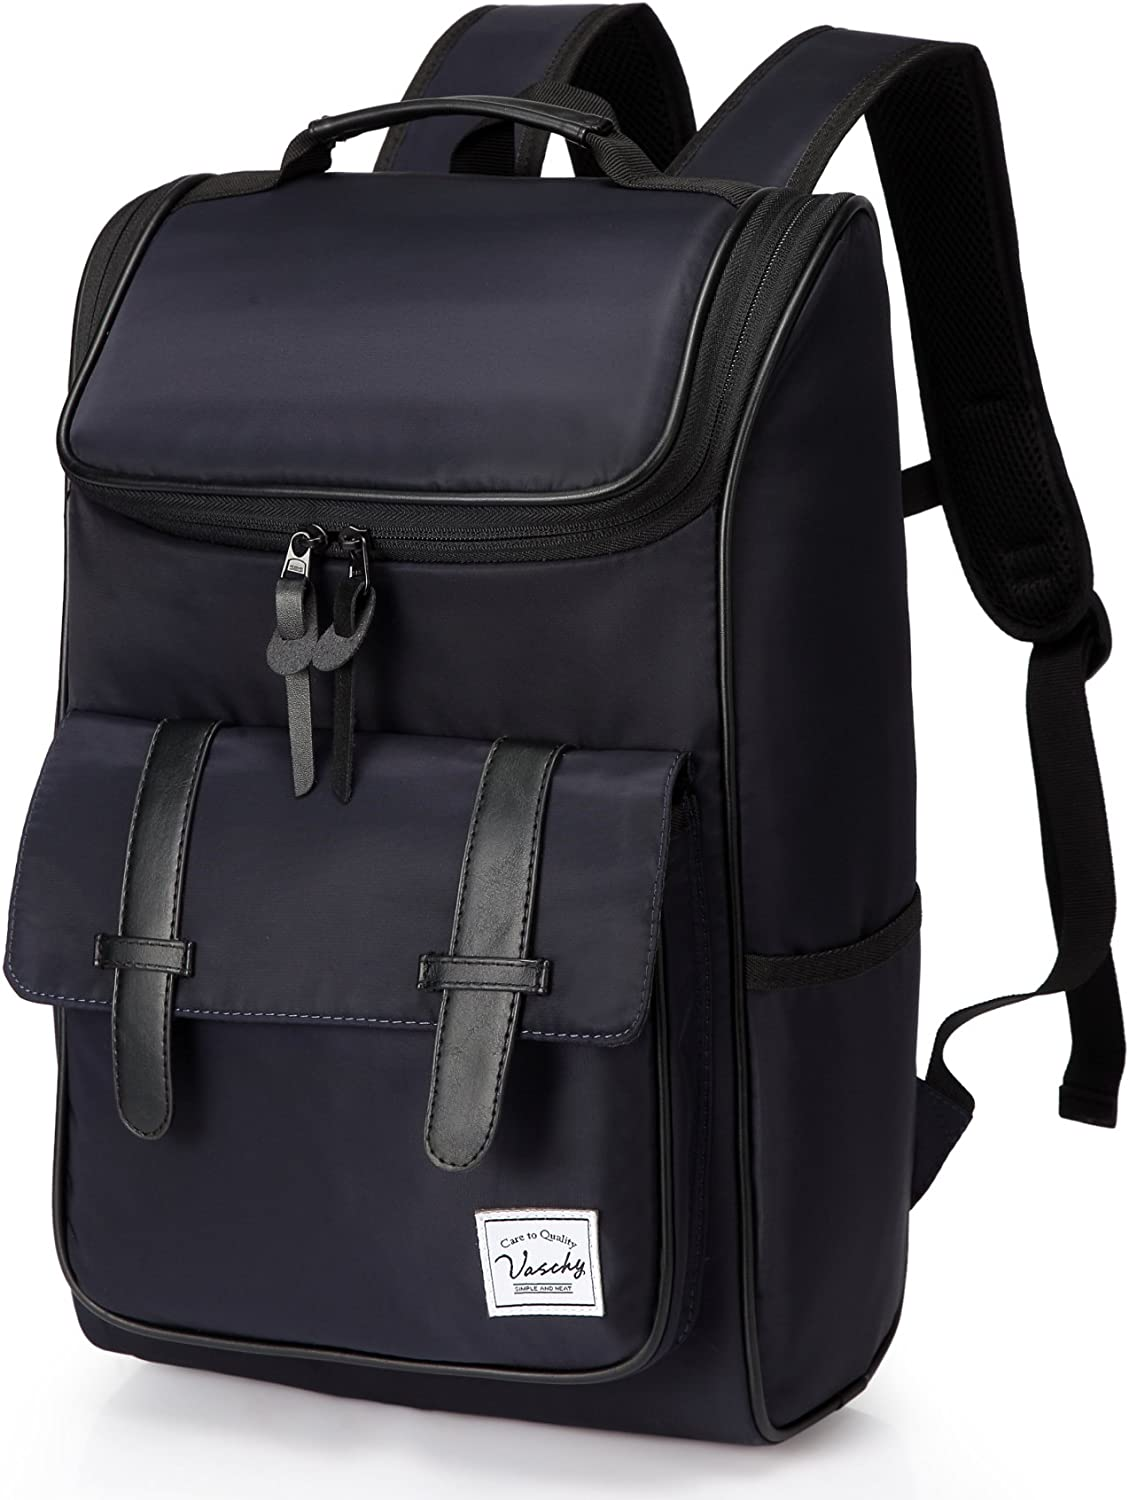 Backpack for men,Vaschy Vintage Water Resistant Daypack Rucksack with Padded 15.6 inch Laptop Compartment